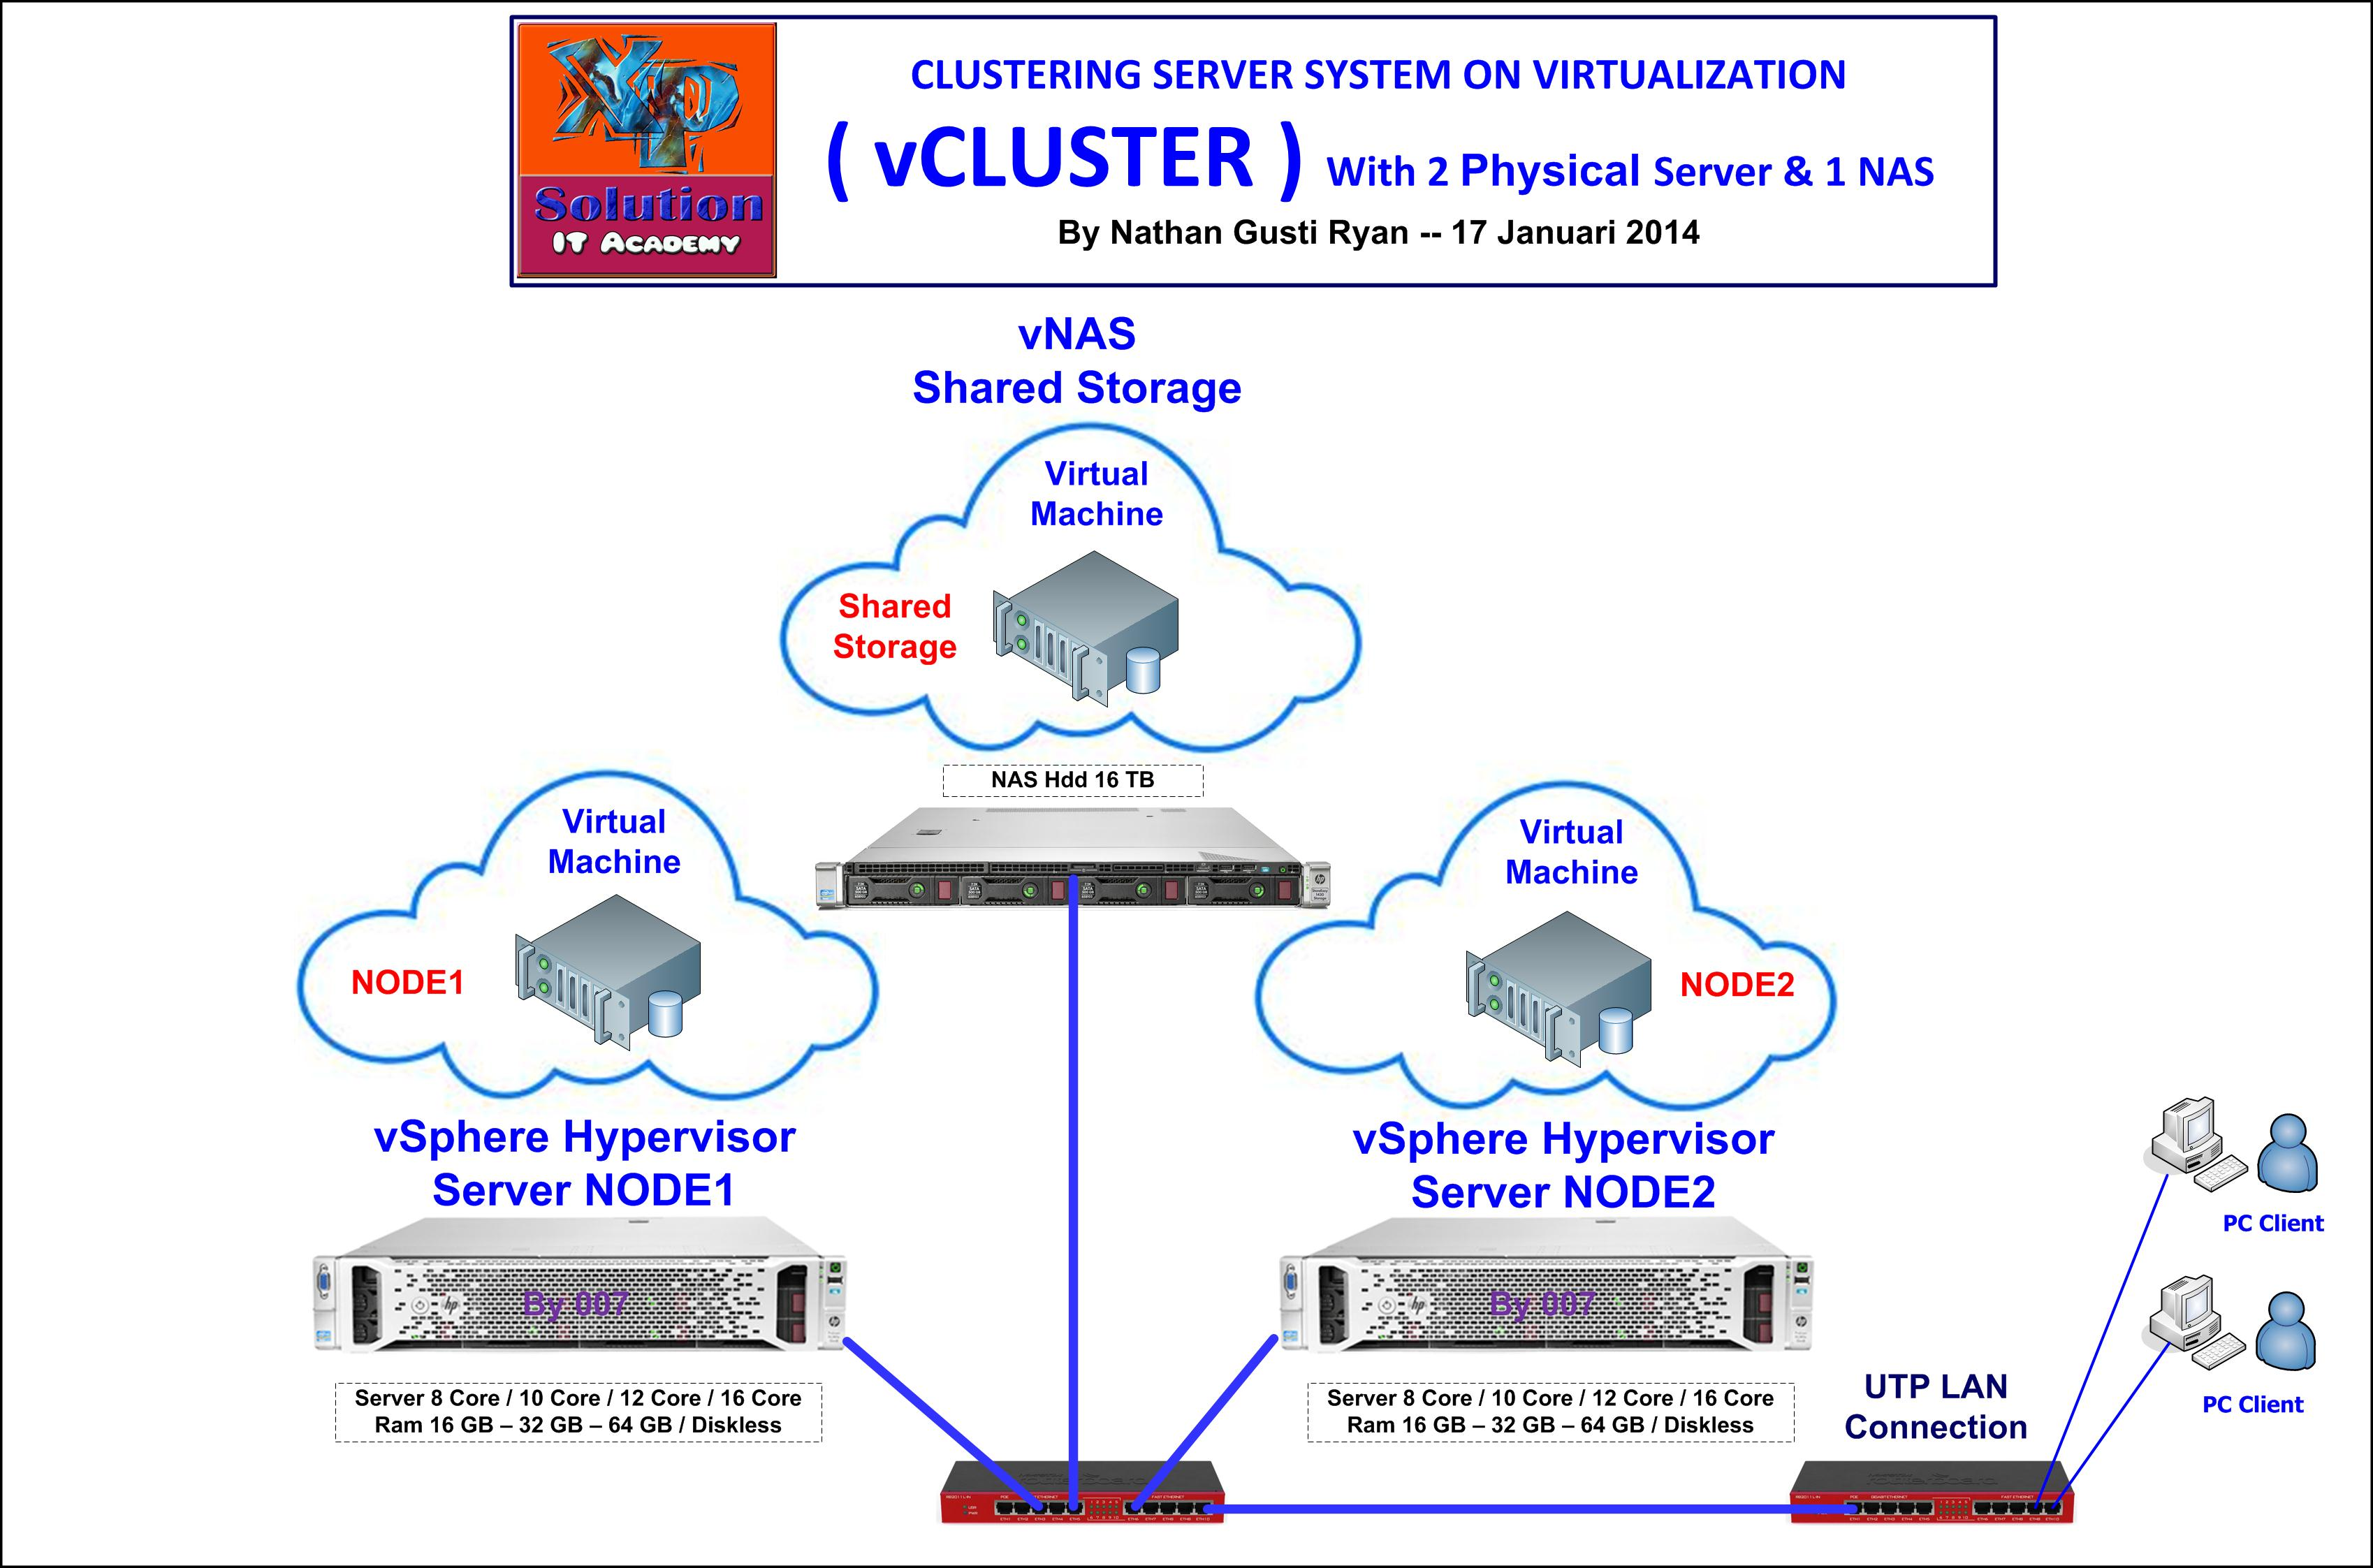 XPS-Clustering-Server-On-Virtualization-with-vSphere-on-2-Machine-1-NAS-Design-Jan-2015